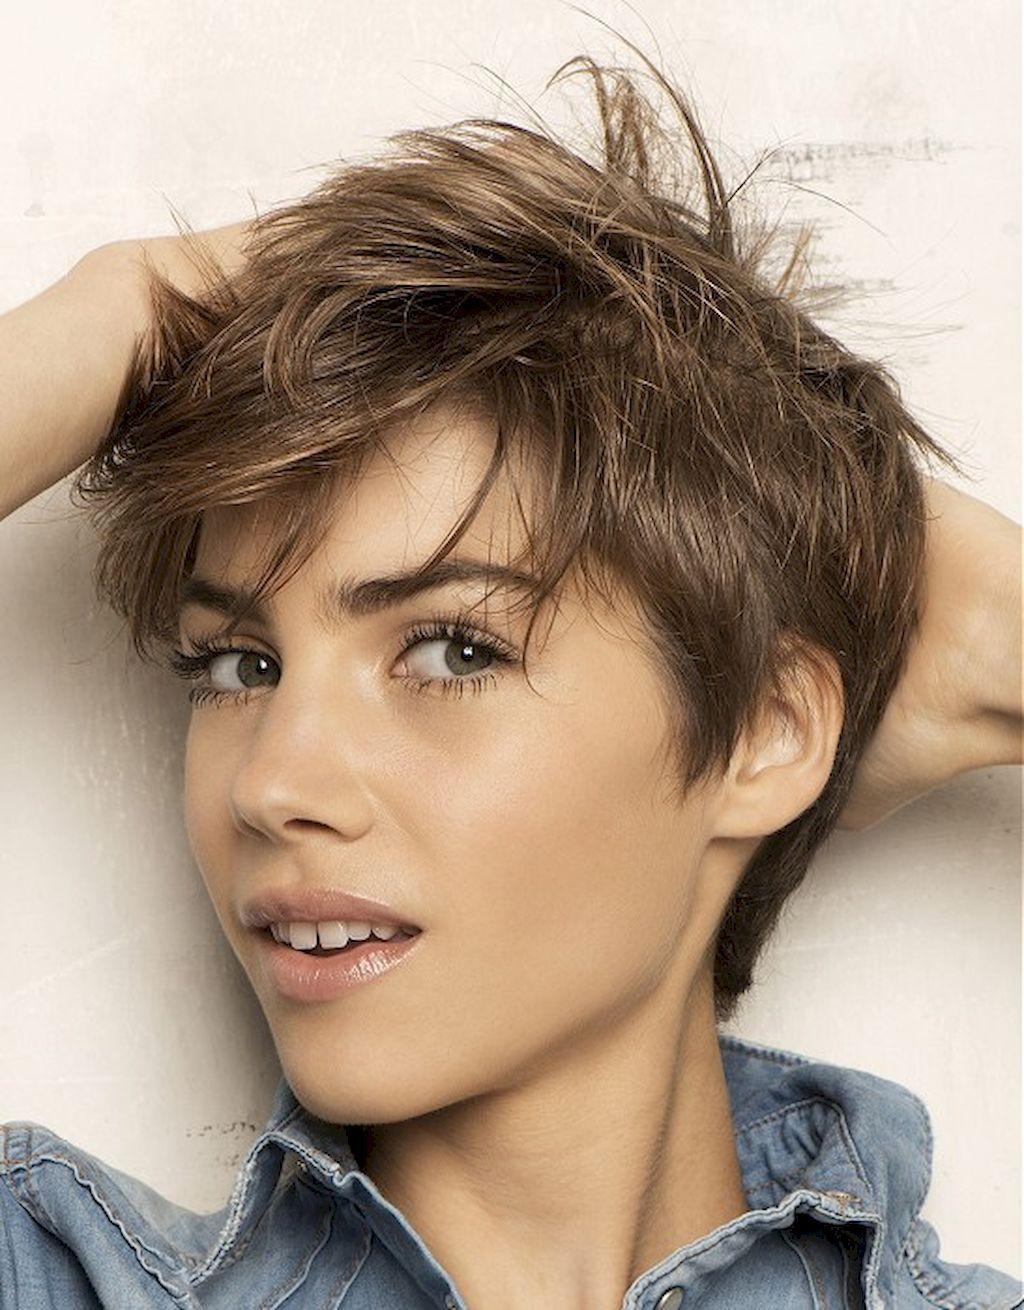 24 Awesome Messy Hairstyles For Short Hair Stiliuse Com Messy Short Hair Messy Hairstyles Messy Pixie Haircut